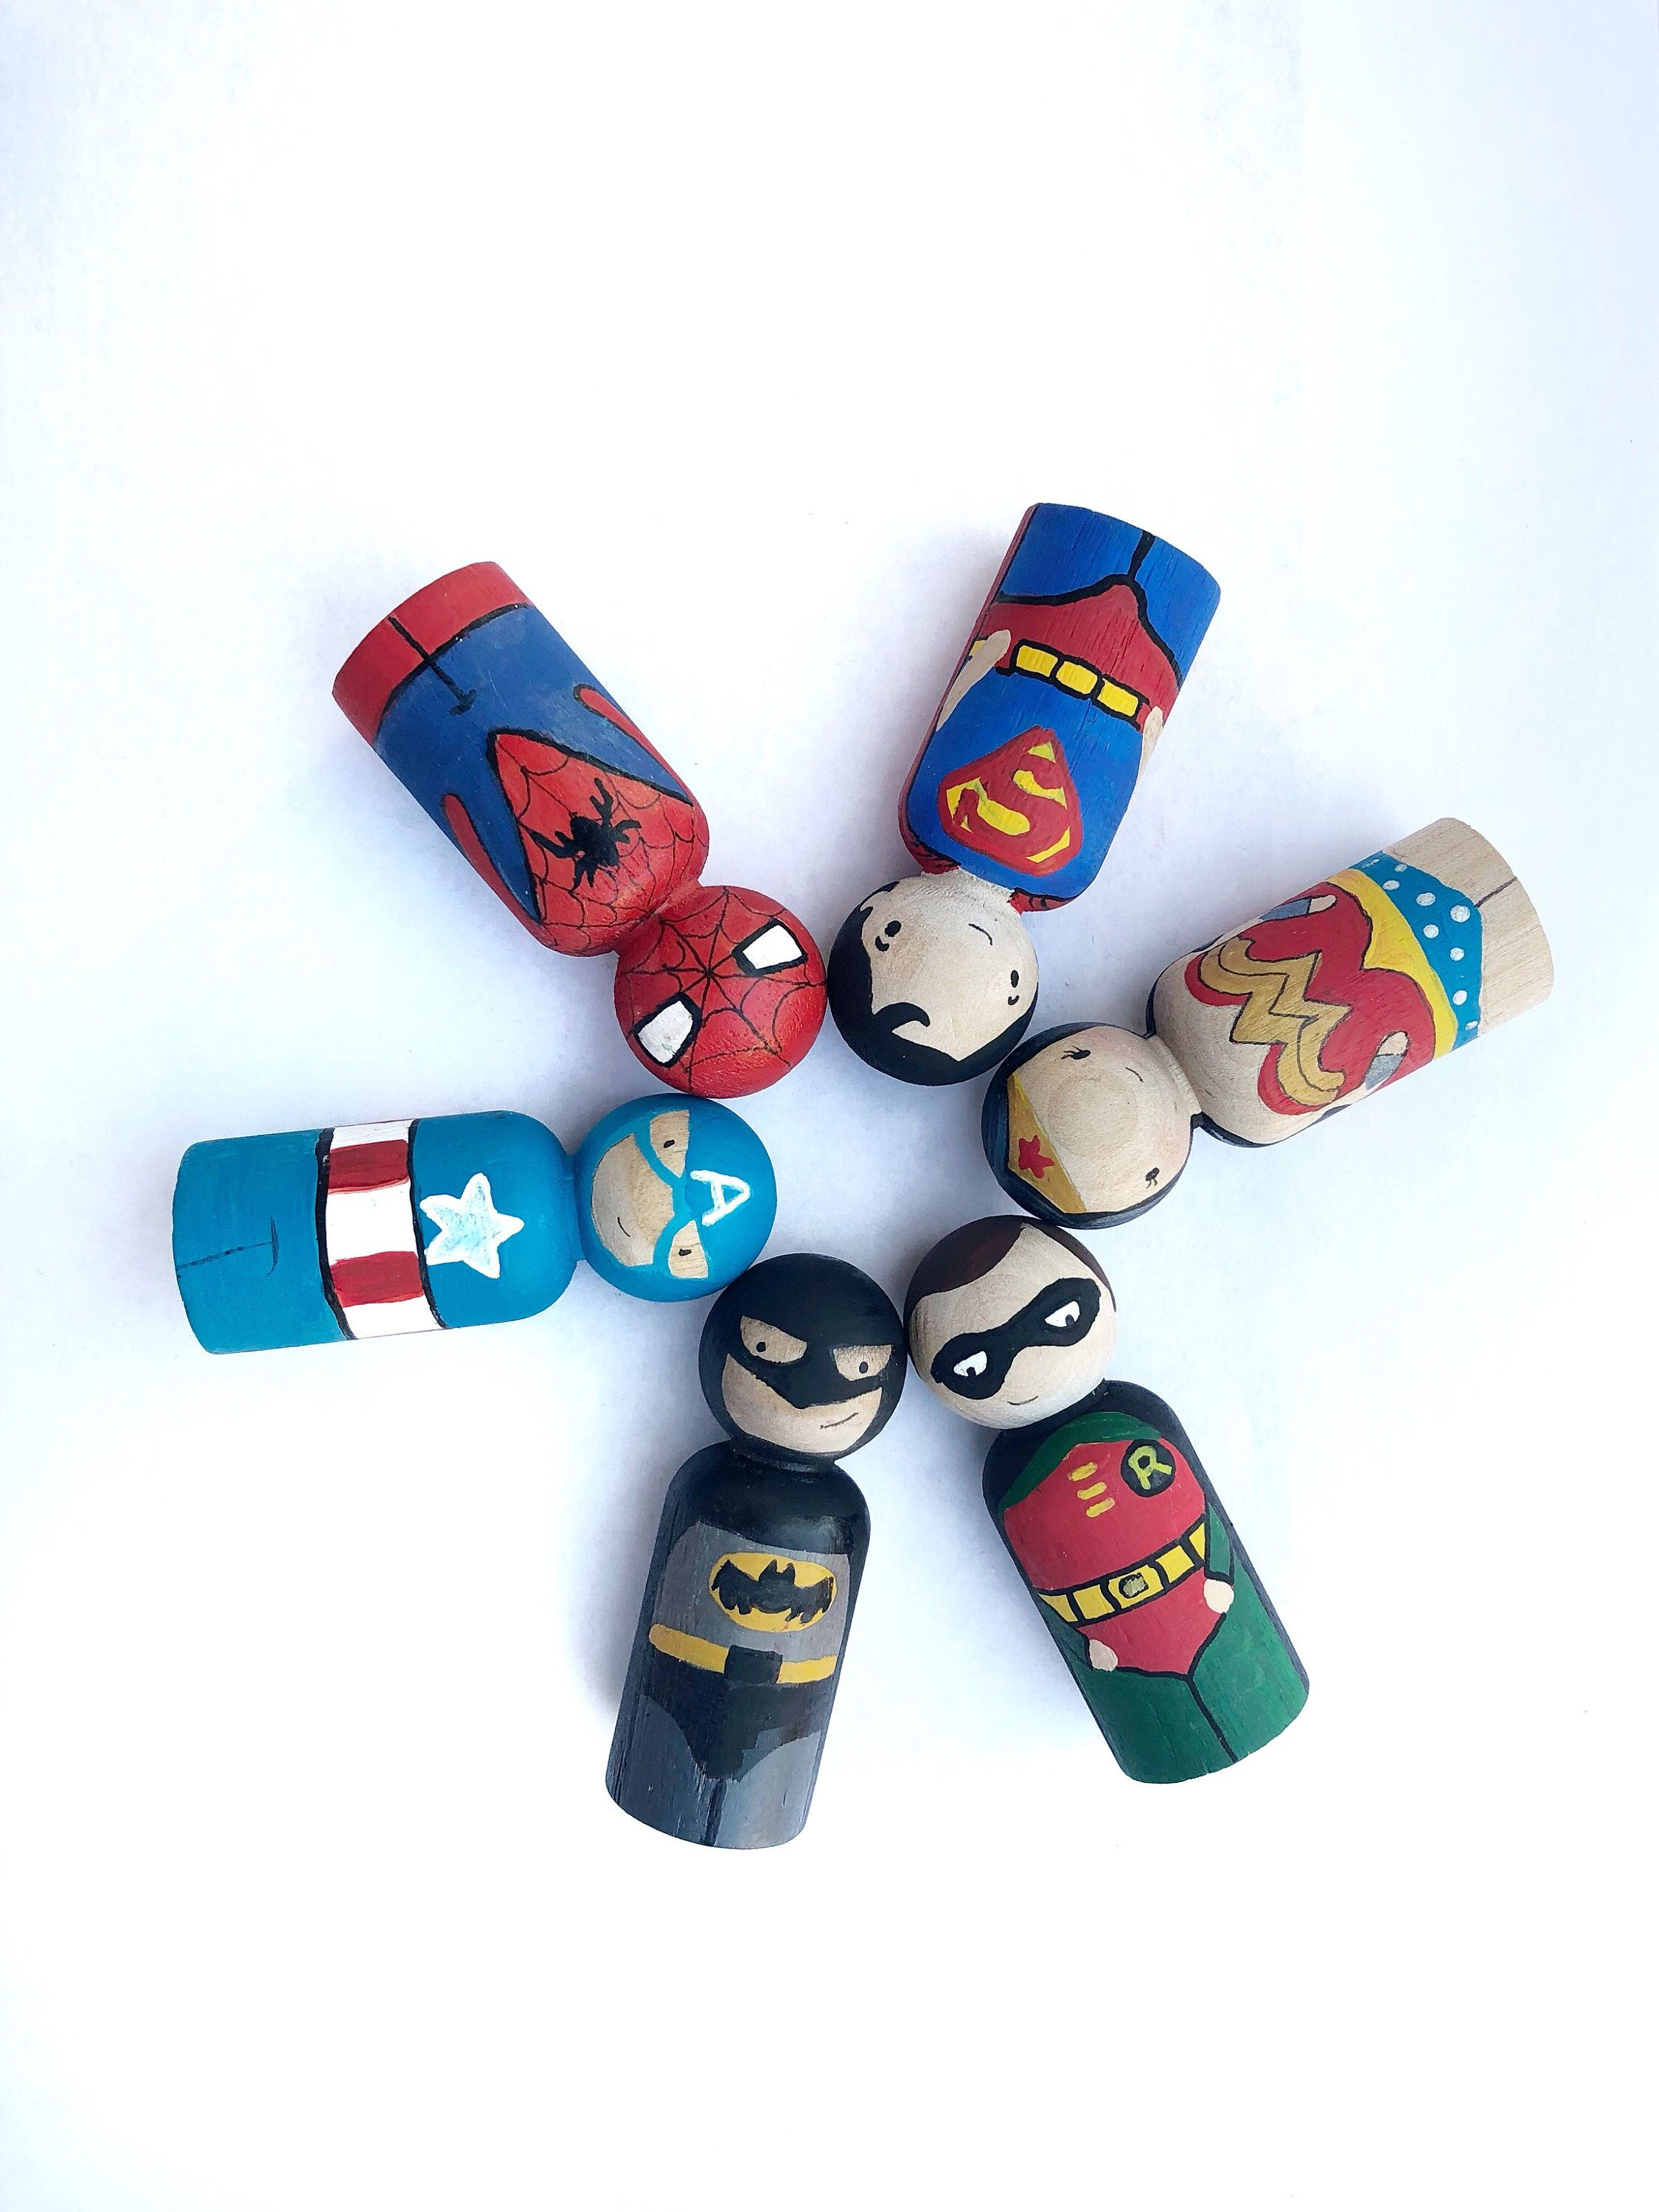 Superhero Peg doll set / Gift for Boys / Christmas Gift / Wooden Toy / Batman / Captain America Busy Bag Toddler Super Hero Stocking stuffer -   18 fabric crafts For Boys christmas gifts ideas